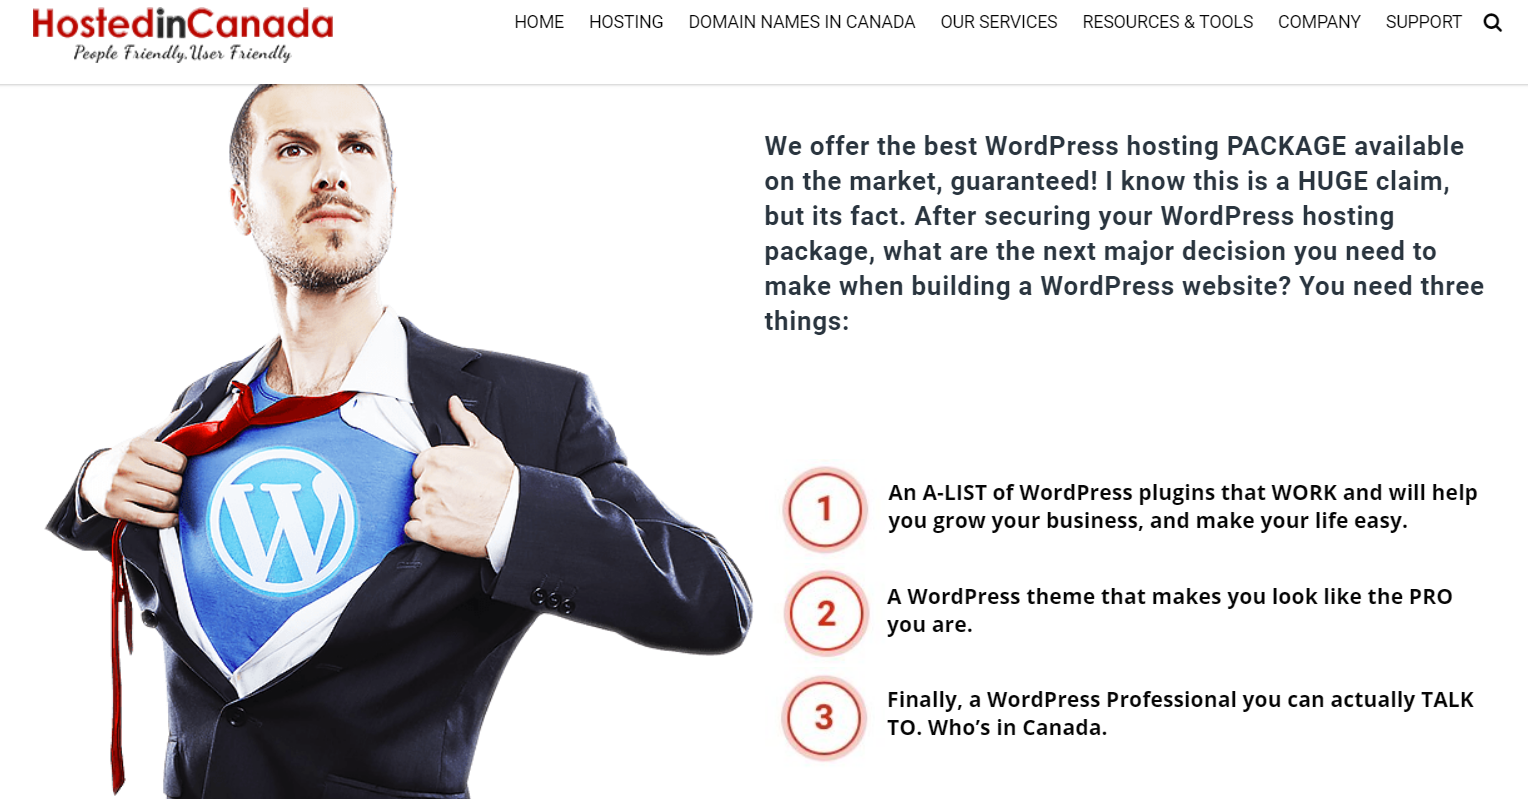 Canadian WordPress hosting packages, hosted in Canada